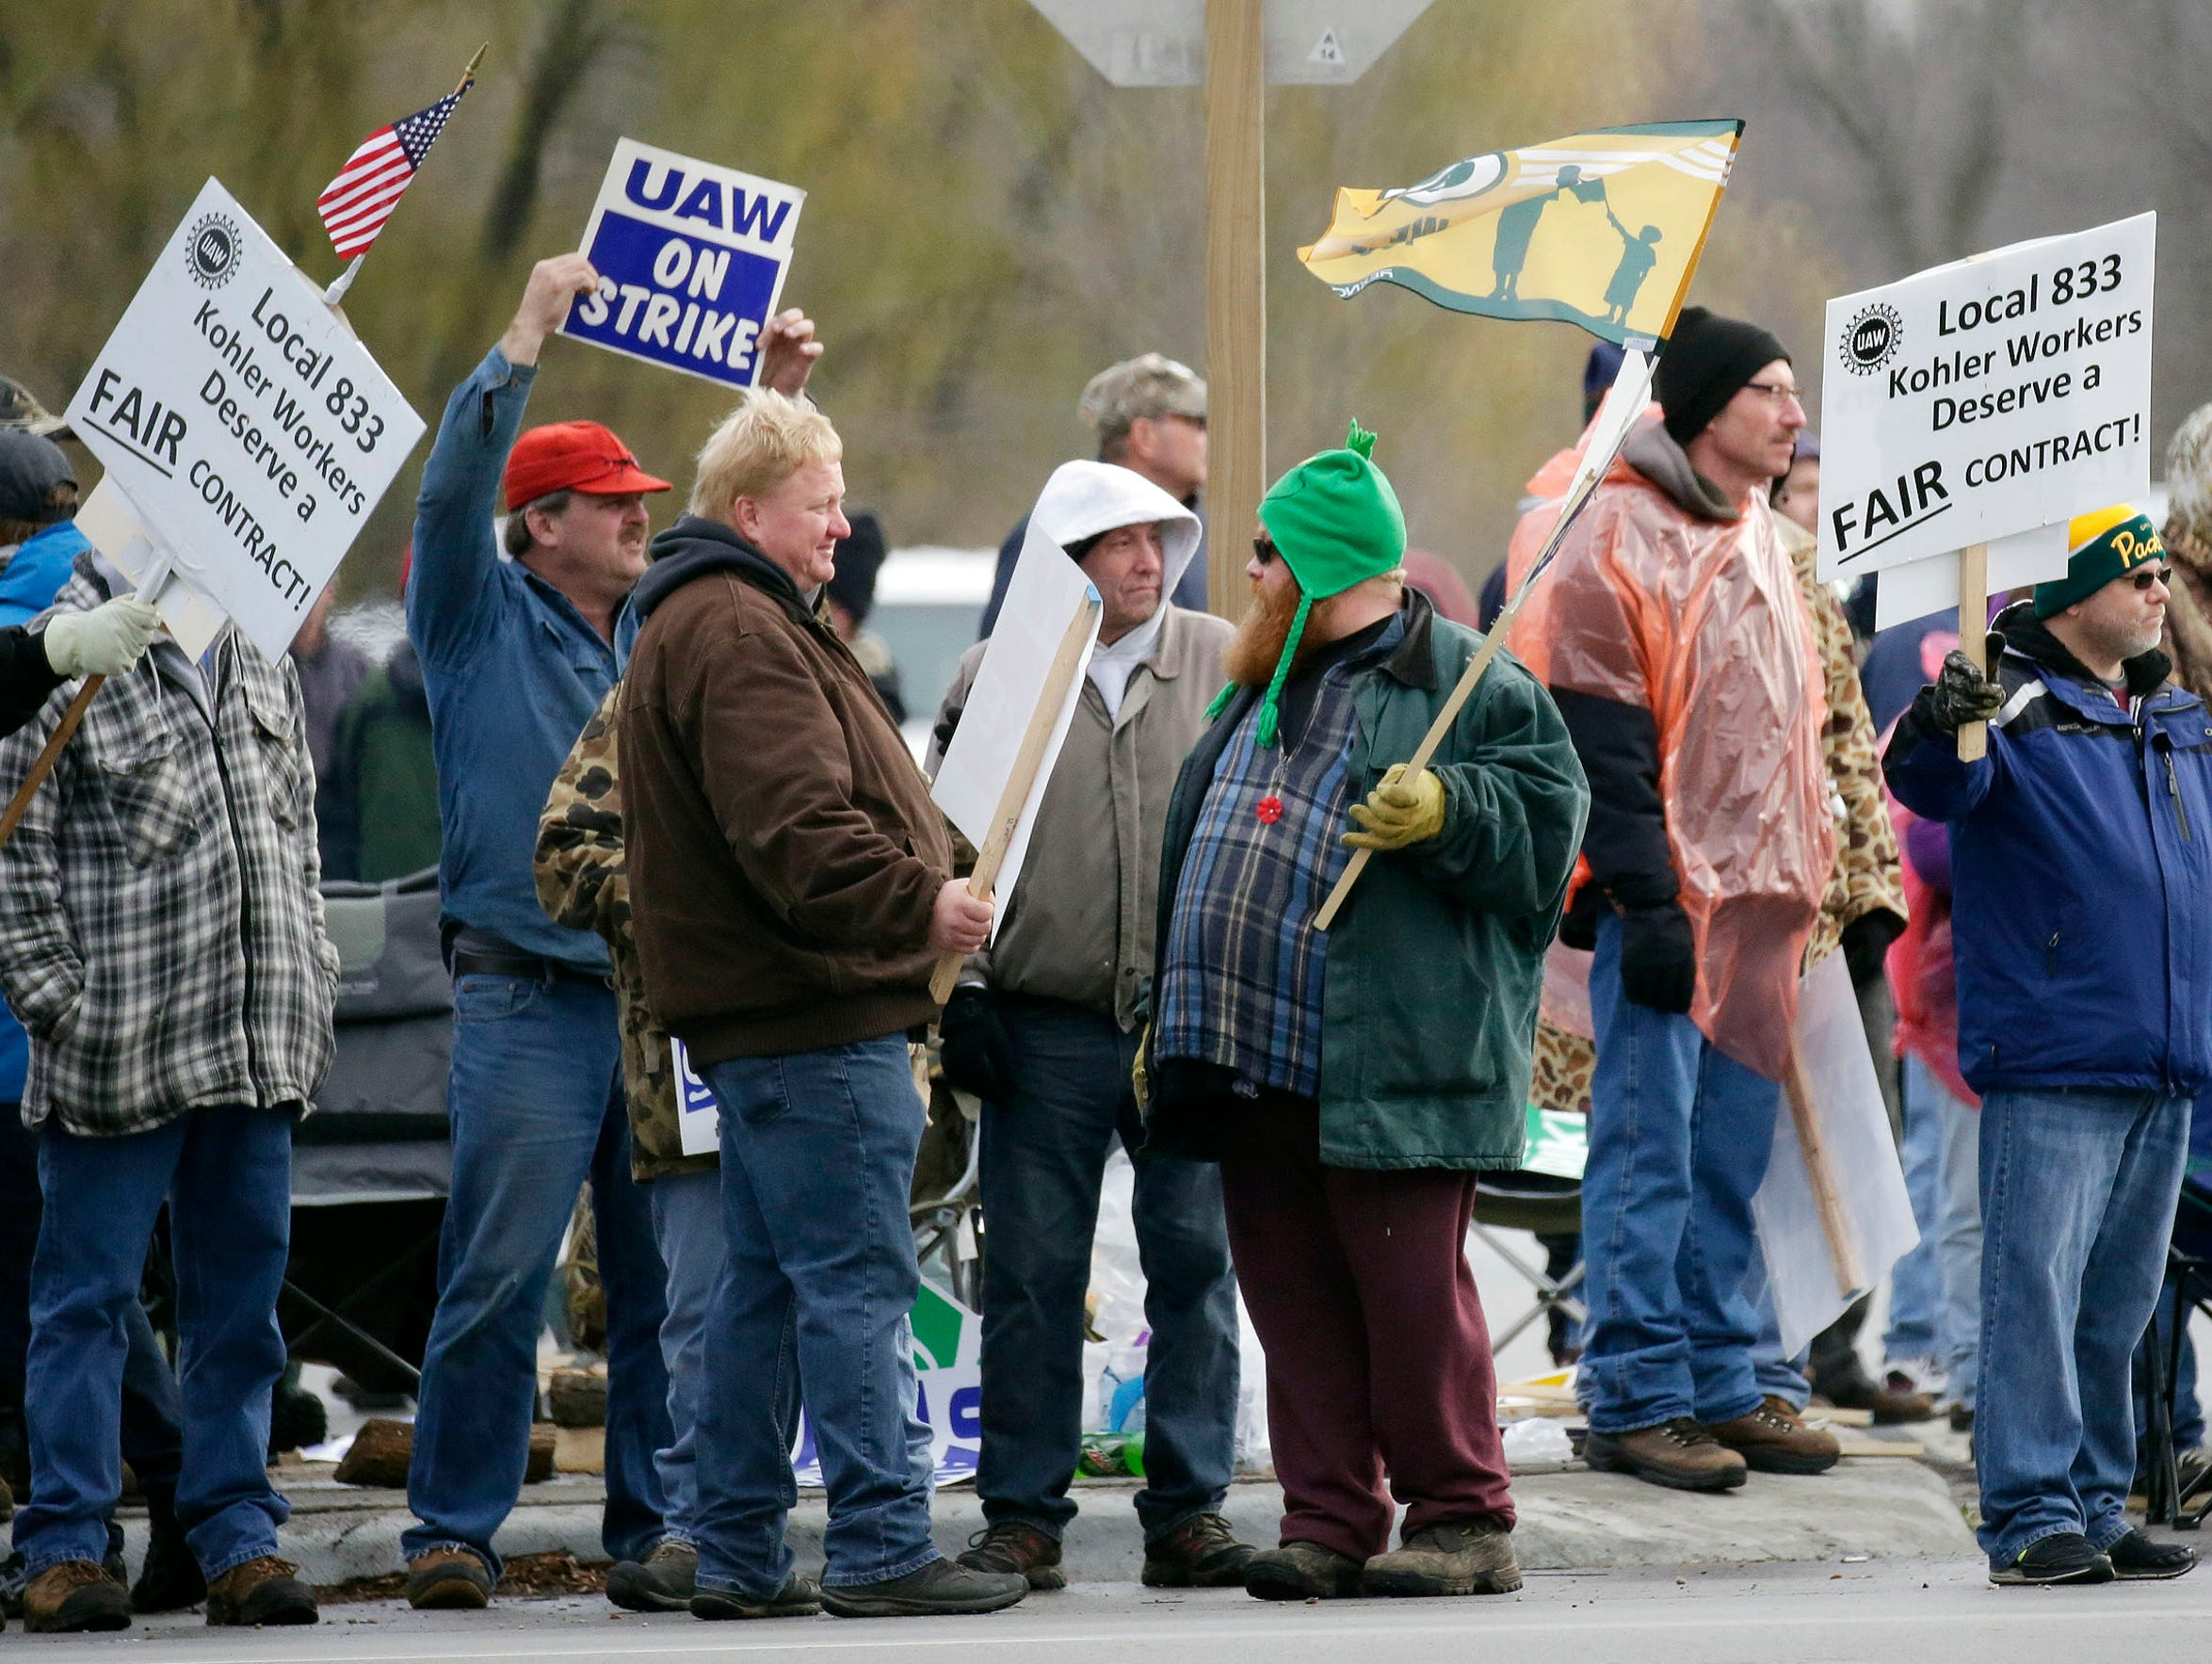 Striking members of UAW Local 833 stand in a picket